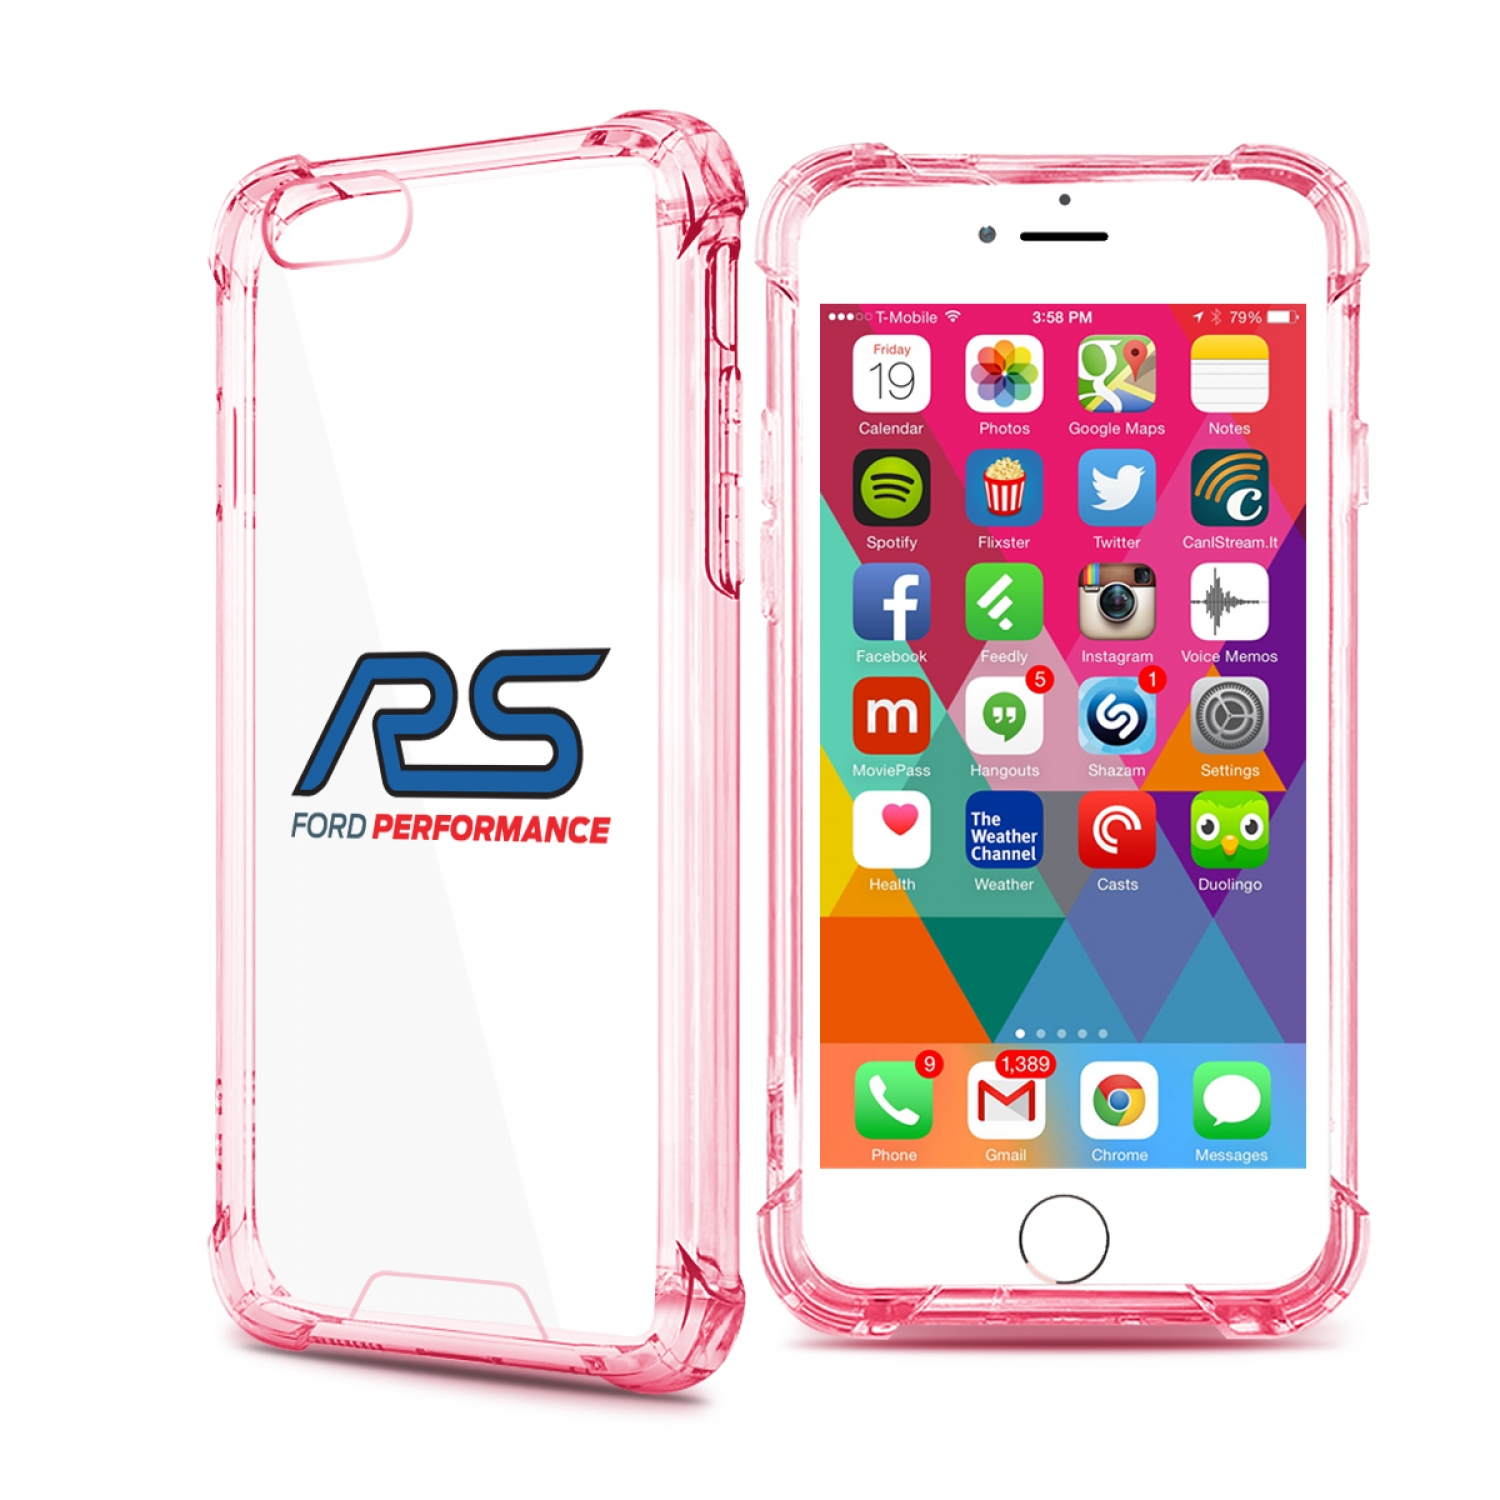 Ford Focus RS iPhone 7 Rose-Red Clear TPU Shockproof Cell Phone Case